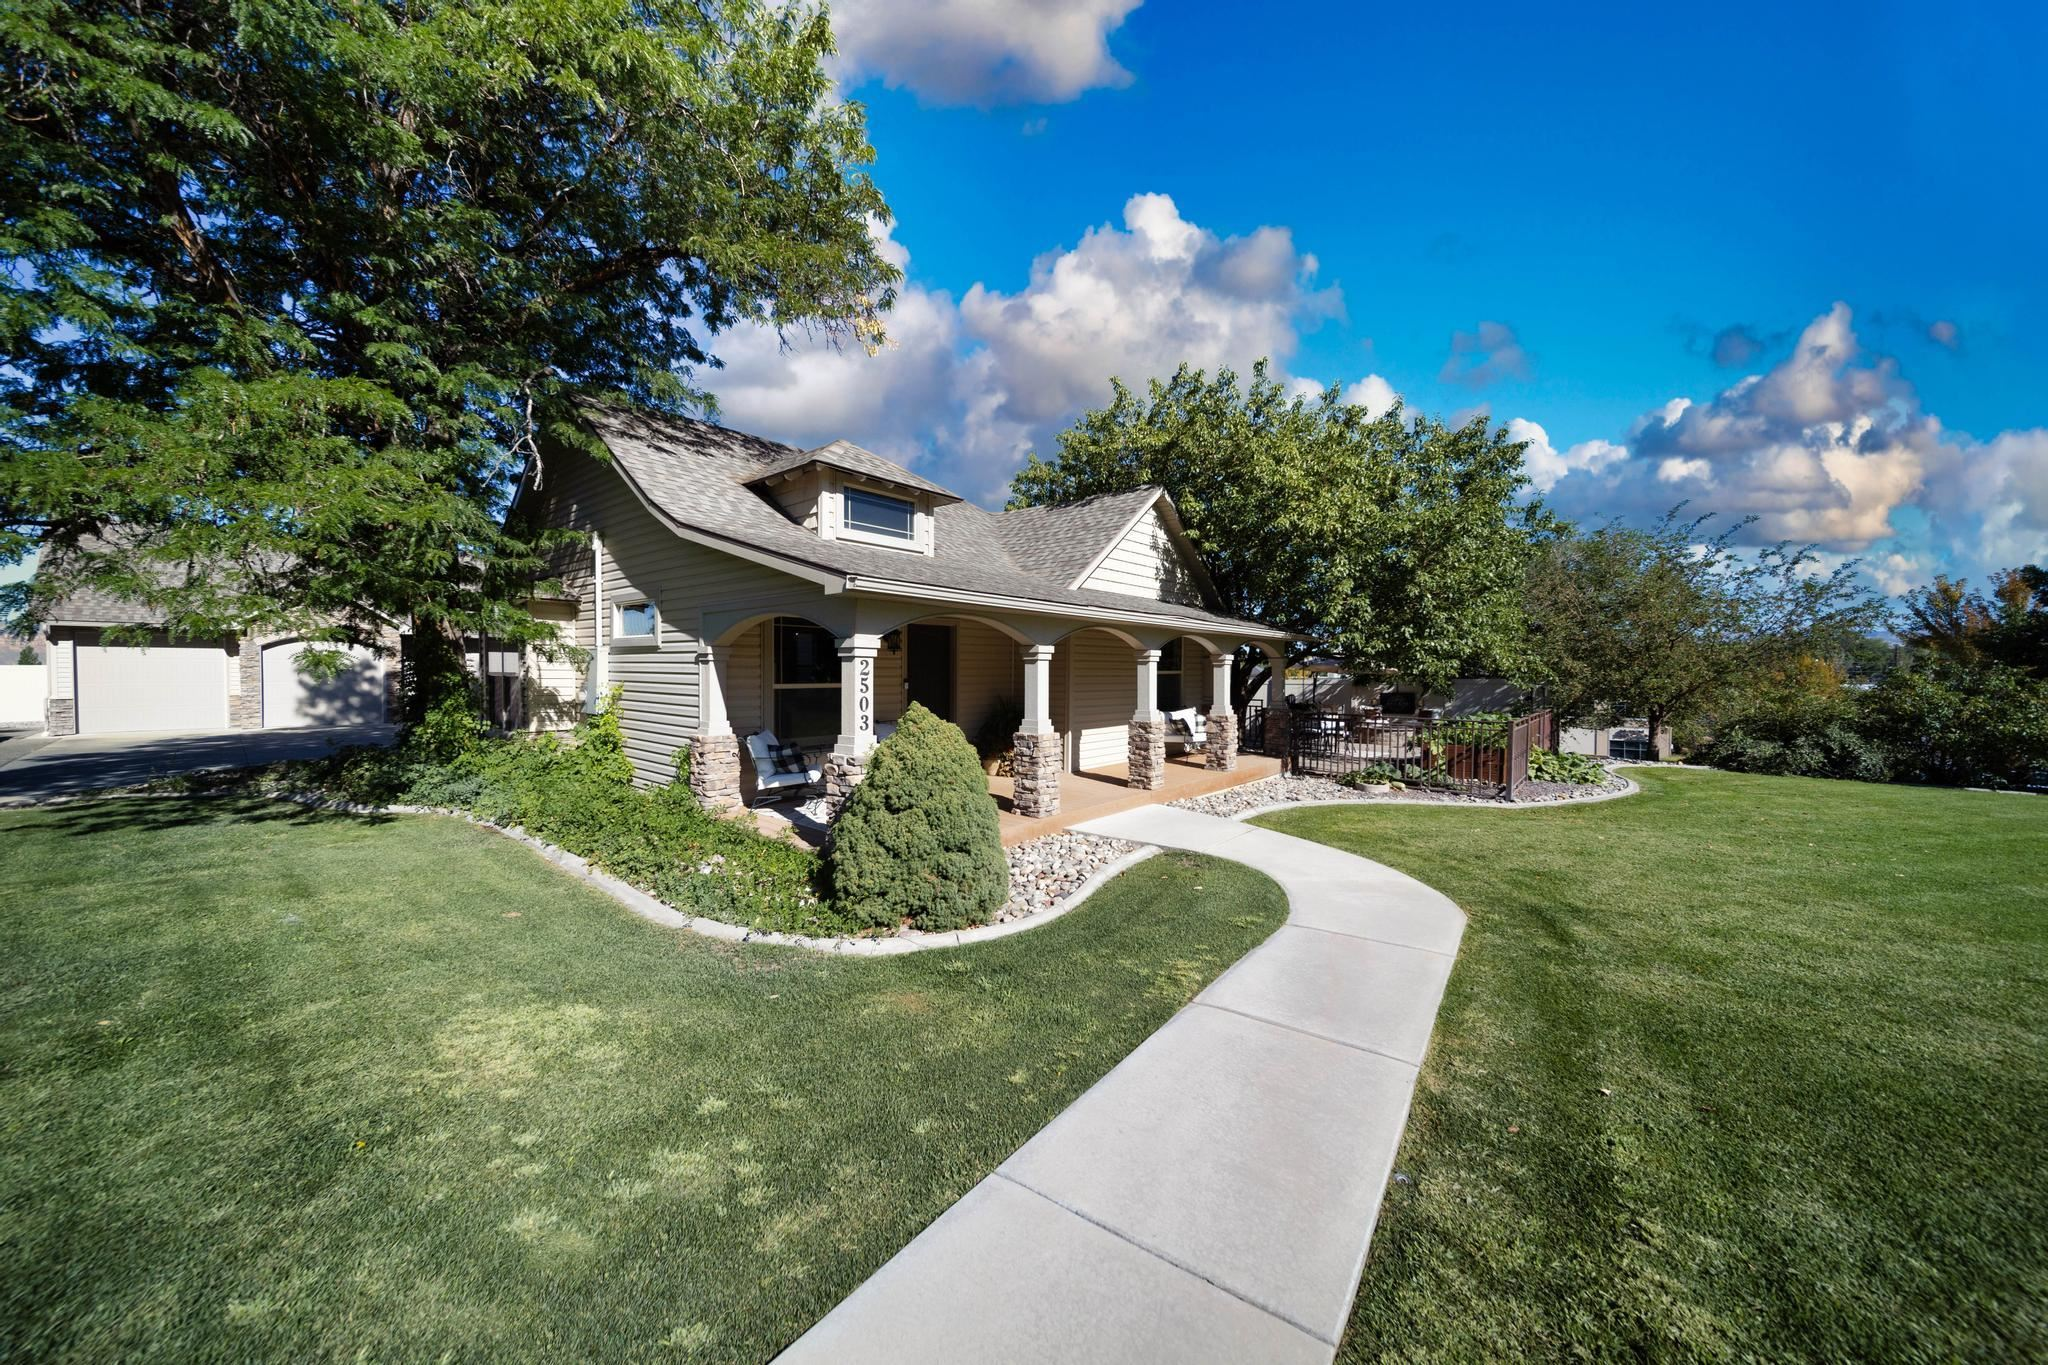 City living at it's finest! Nestled right off historic 1st Street, and minutes from downtown, shopping, and restaurants; this fabulous craftsman sits on just shy of a half acre. To say this home has it all is an understatement! Character from the 1900's is still in tact and found through out the home. From the original front door now used as the gateway to the pantry, to a repurposed leaded glass window in the powder bath, you're sure to find jewels like these at every turn. No more fighting over the bathroom as all three bedrooms have their own on-suites, plus a powder bath for your guests. Two living areas provide ample room to spread out, relax, play a game, or just read a book by the fire. If you're passion is for entertaining then the updated kitchen will surely steal your heart. With rich knotty alder cabinets, a brand new stone backsplash, new quartz counters, a huge island with a